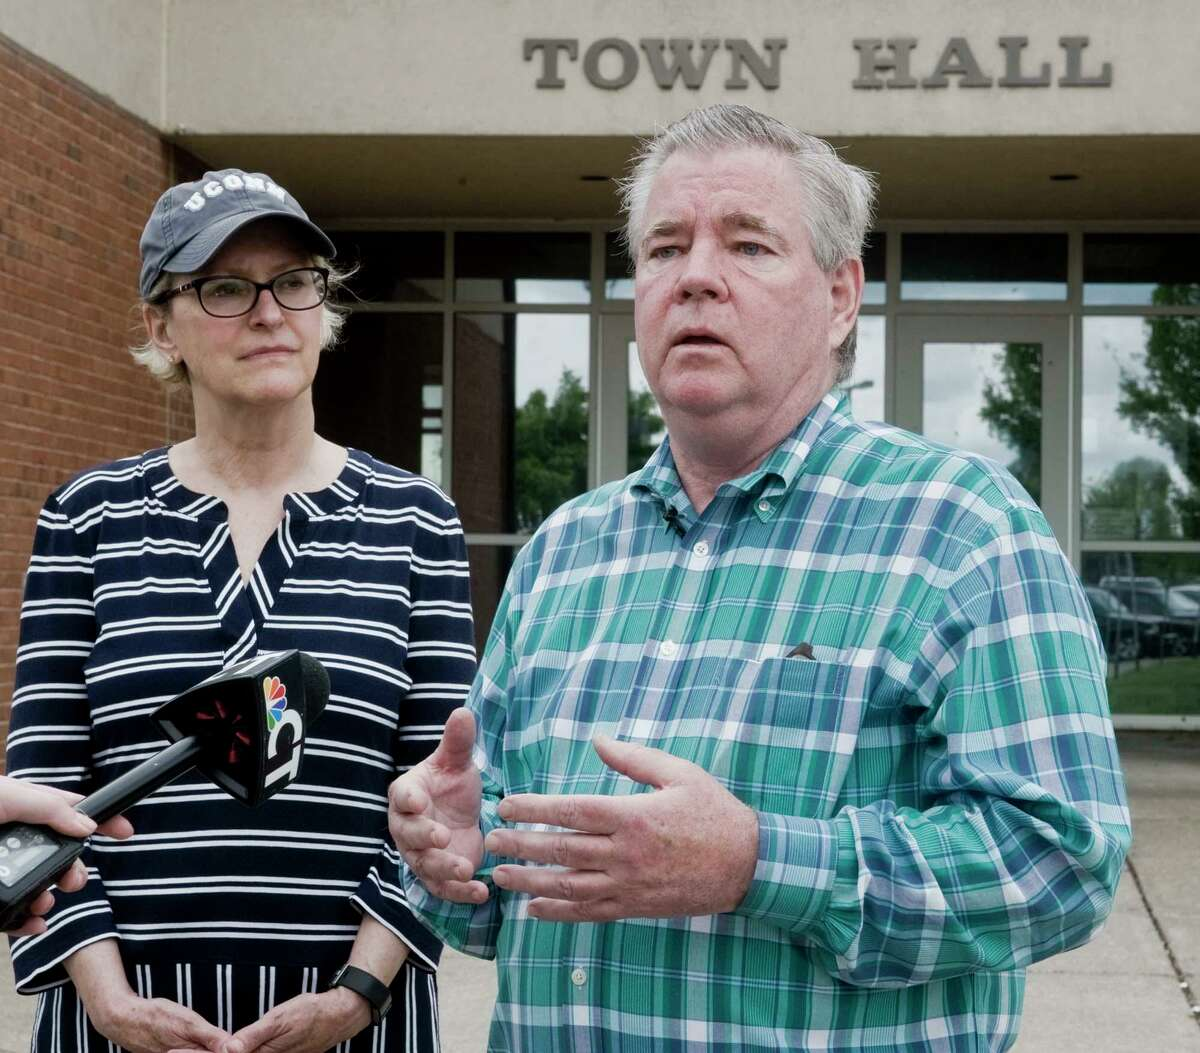 Brookfield Selectman Sue Slater listens to First Selectman Stephen Dunn Brookfield at Town Hall in May 2018, discuss the storm damage to the town.